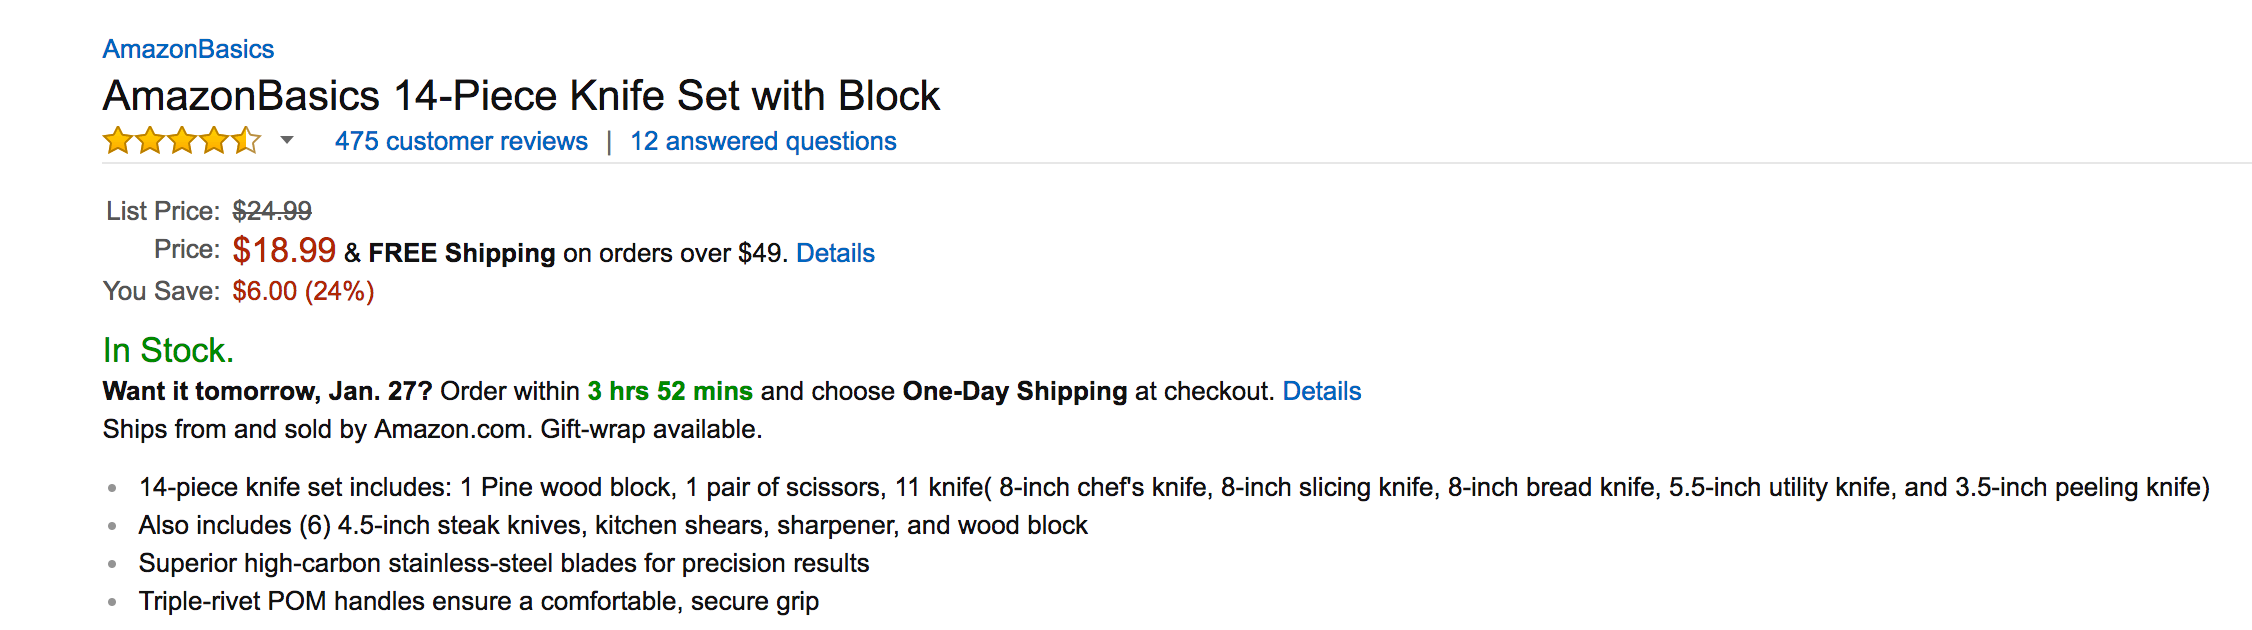 amazonbasics-knife-block-sale-02